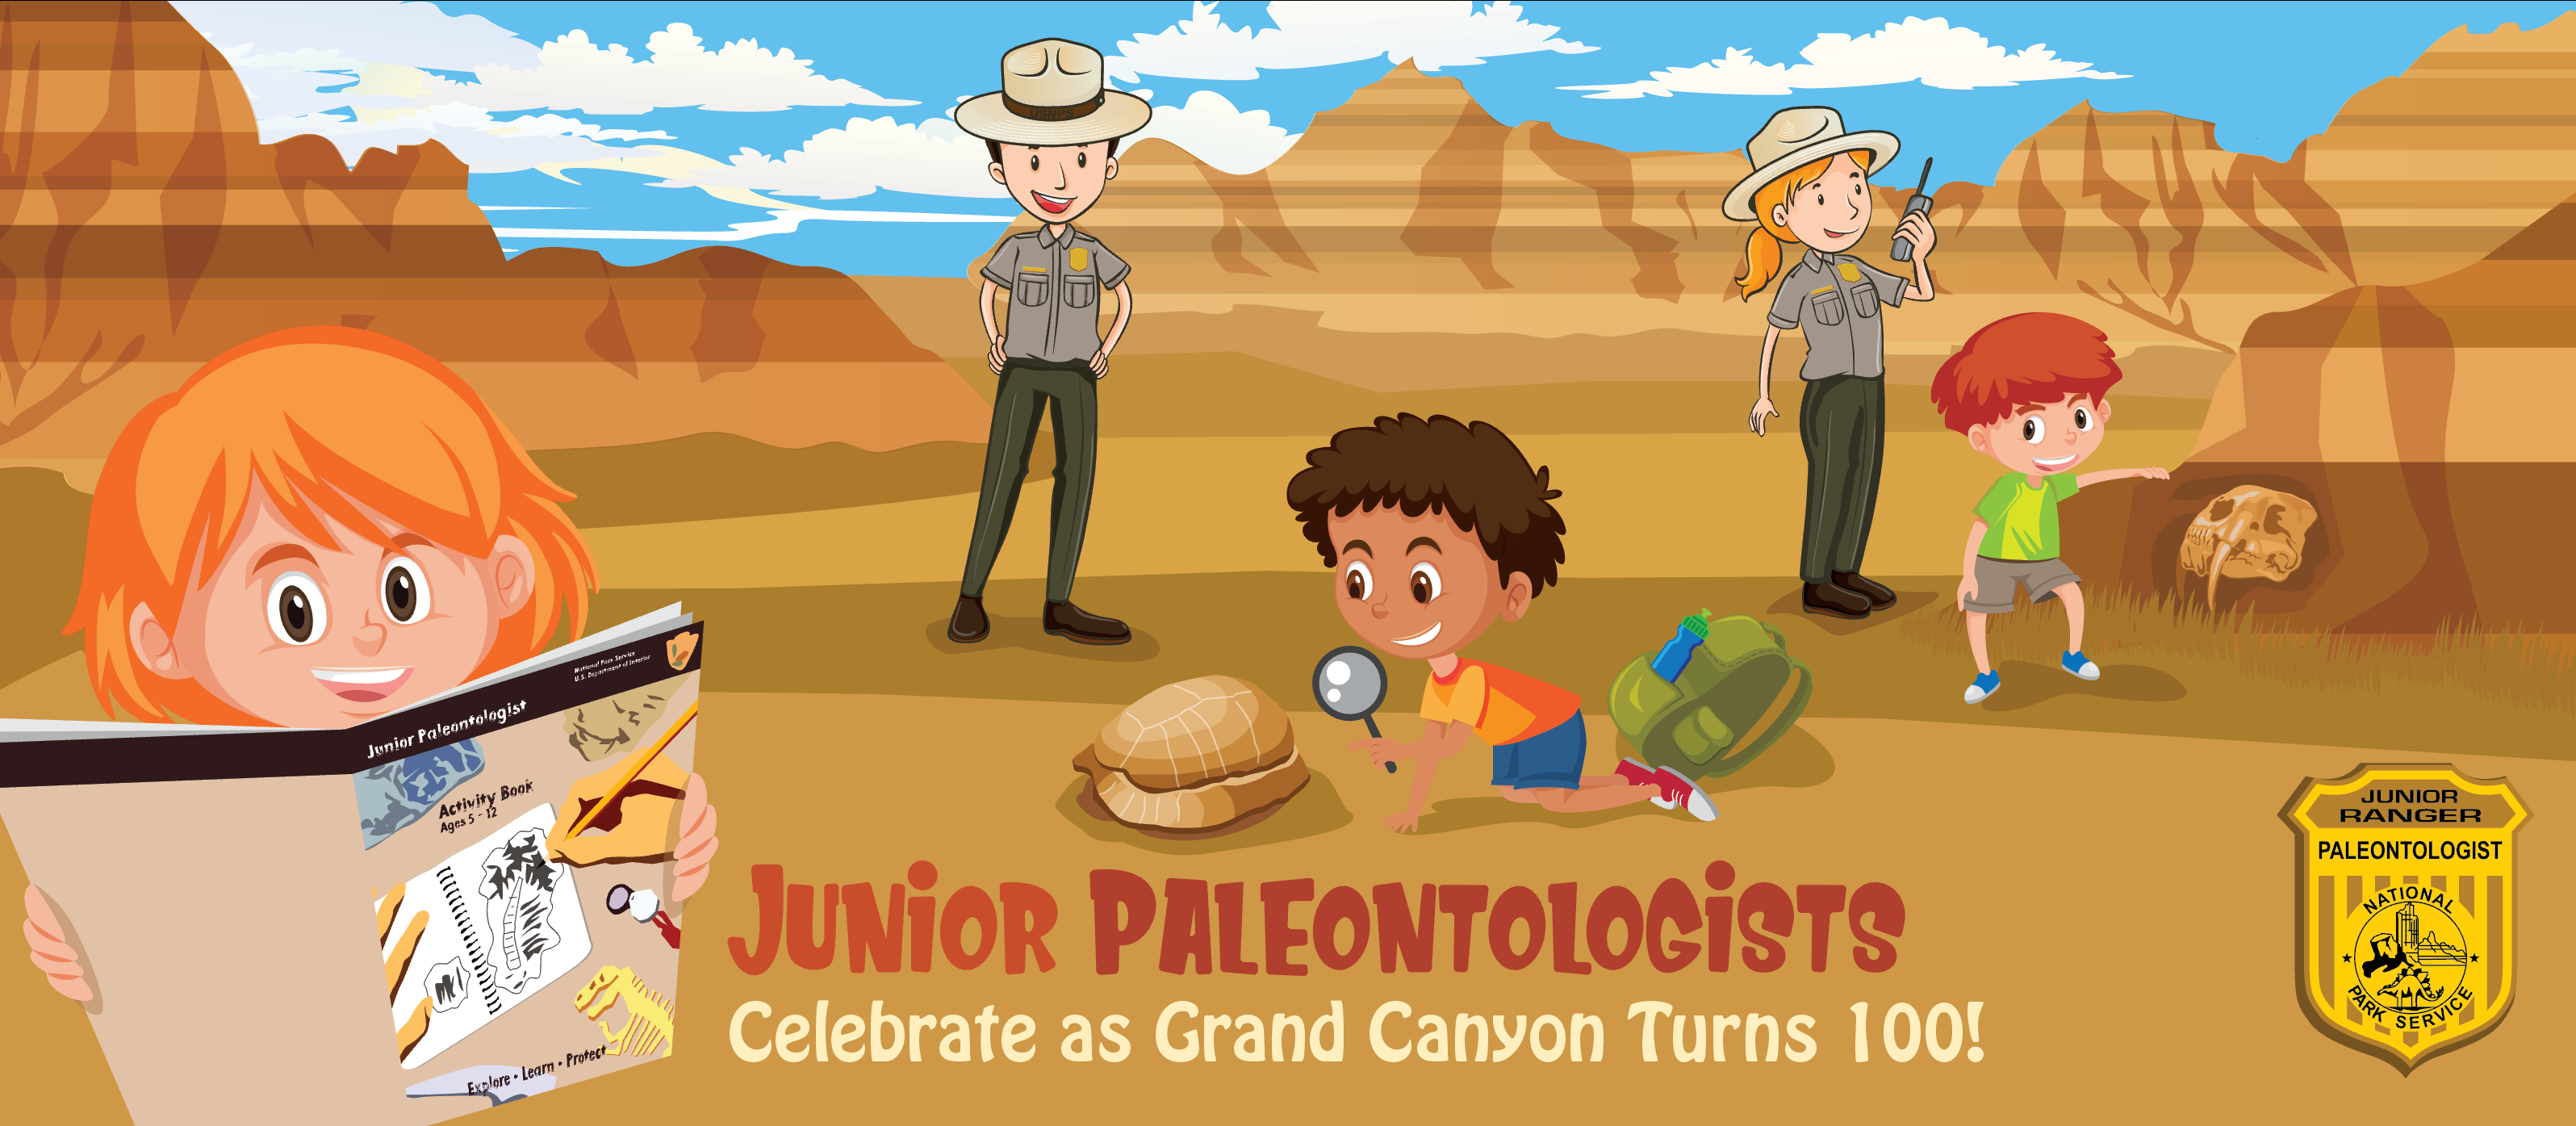 Cartoon children discover fossil while a park ranger overlooks